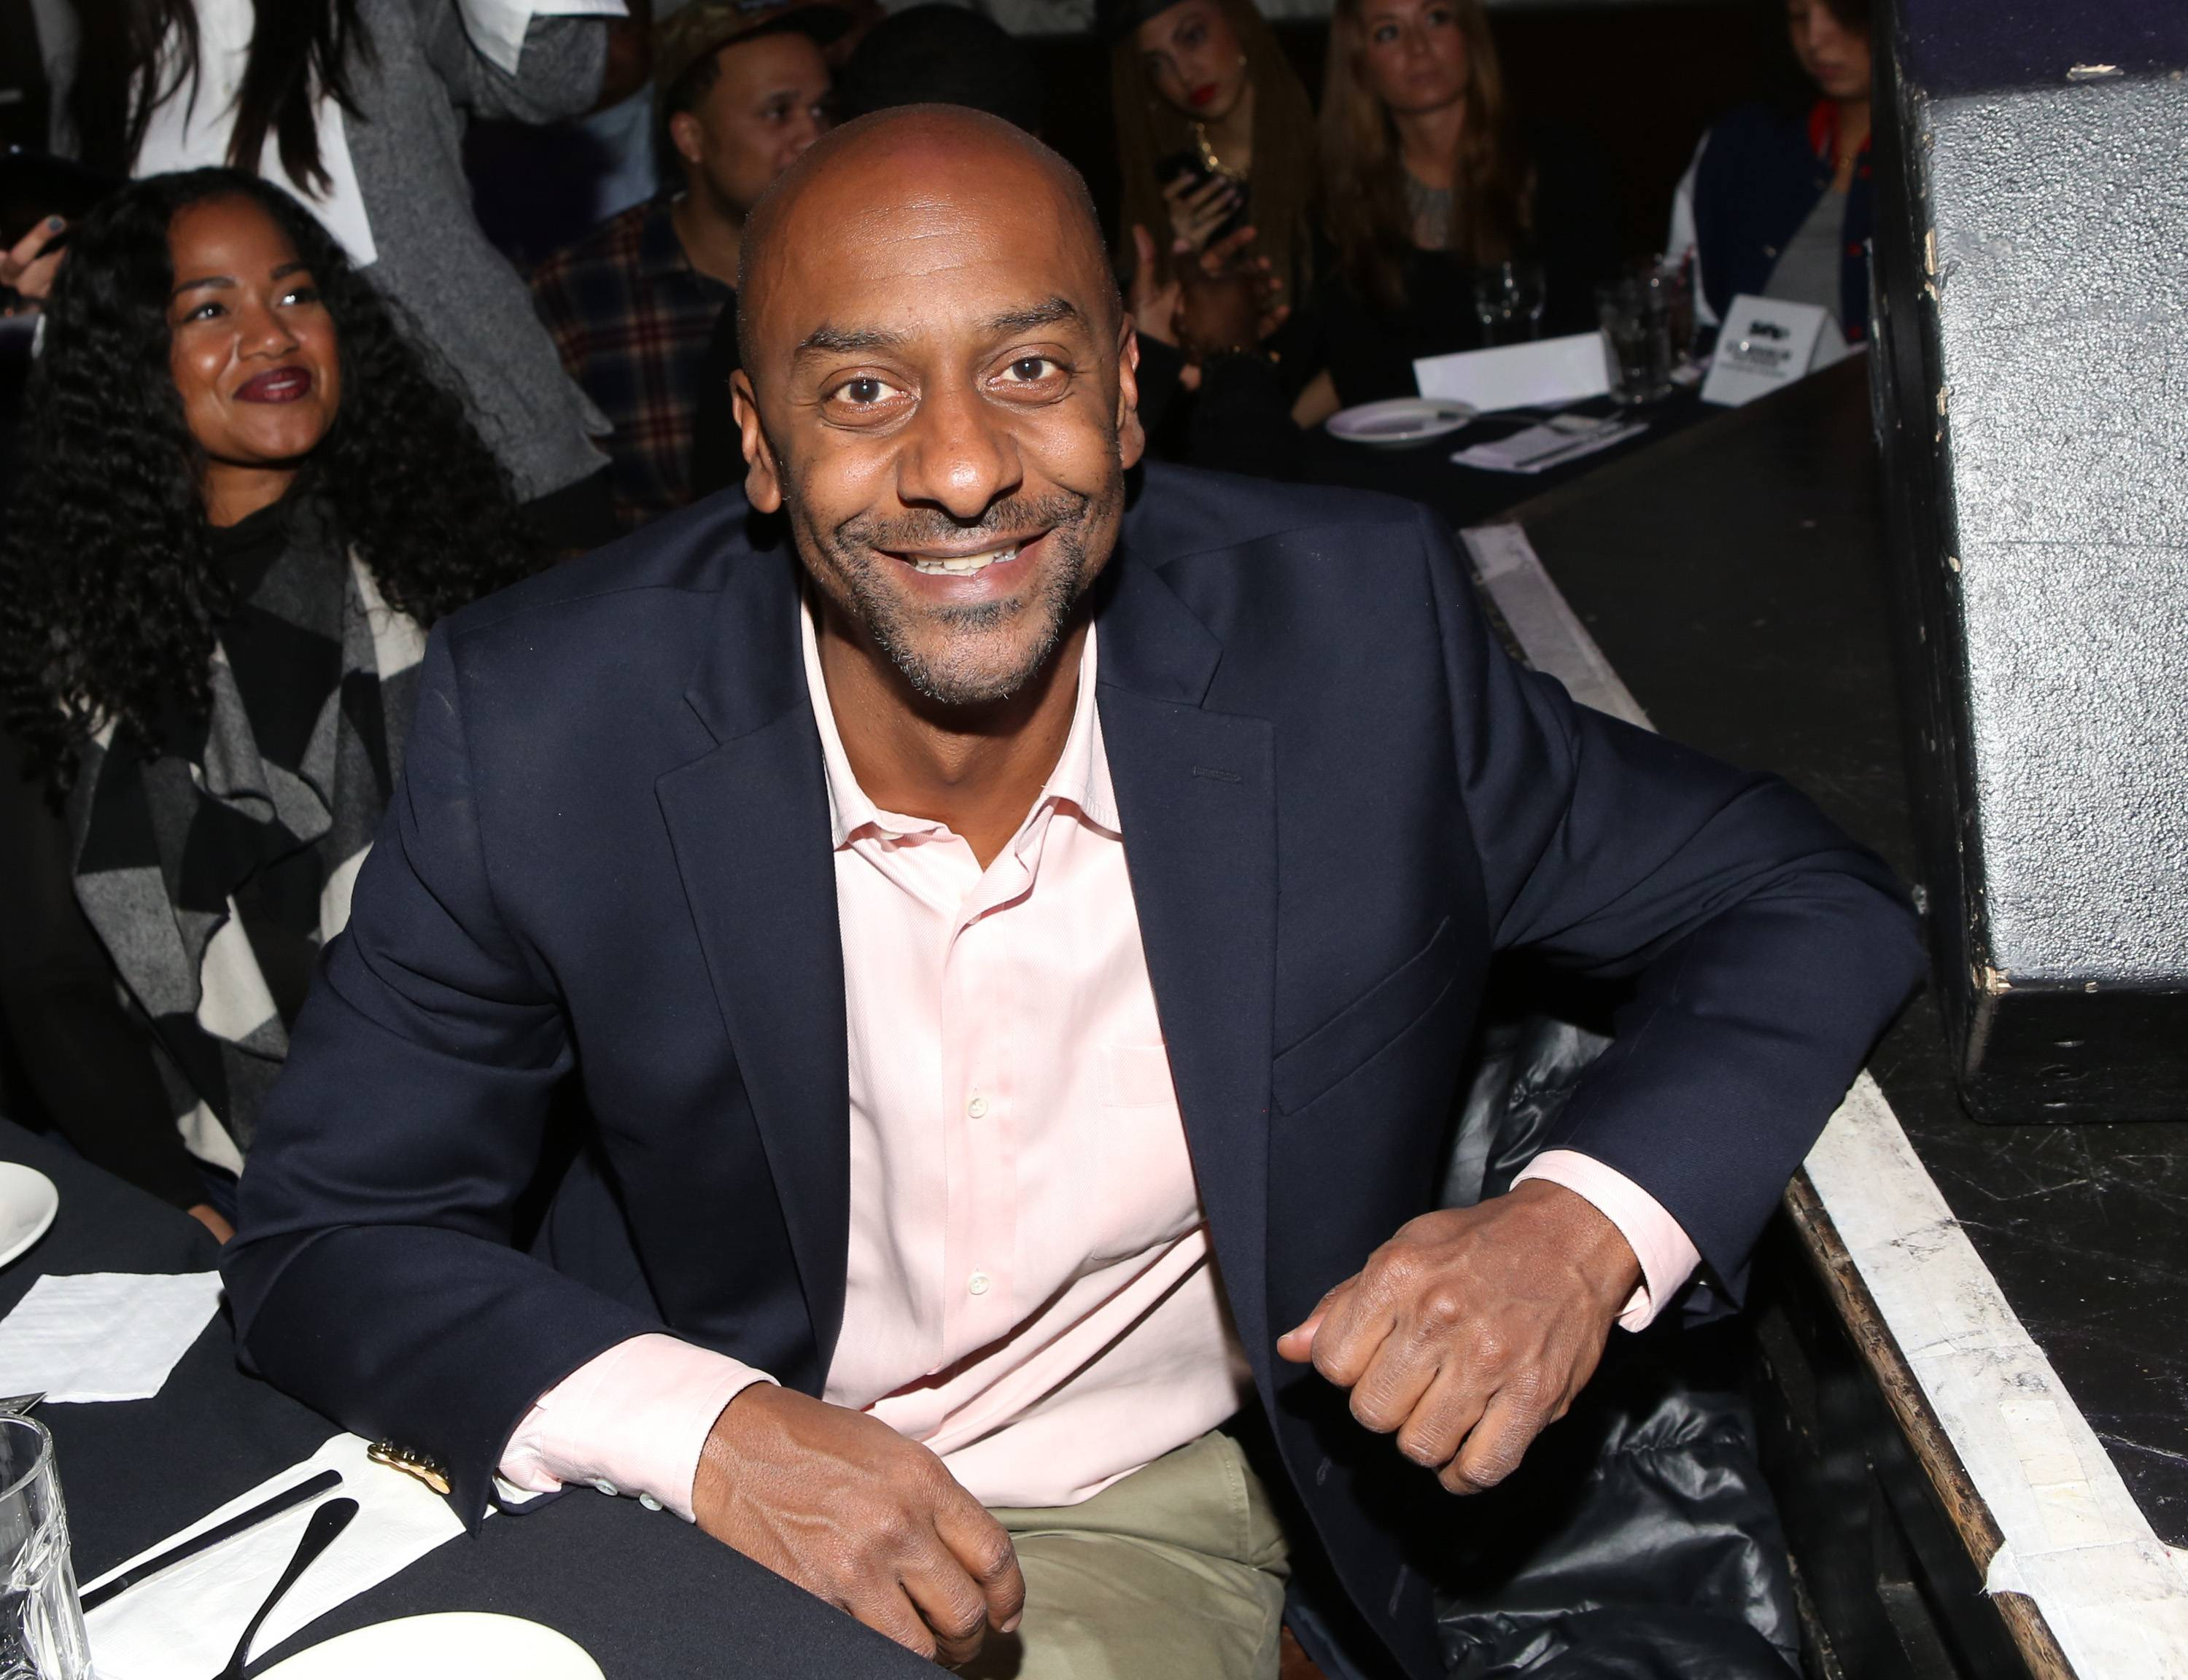 All Together Now - The whole BET team is behind this music movement. BET SVP of Music Programming Stephen Hill stops by the December showcase to check out the next cluster of stars.(Photo: Bennett Raglin/BET/Getty Images for BET)